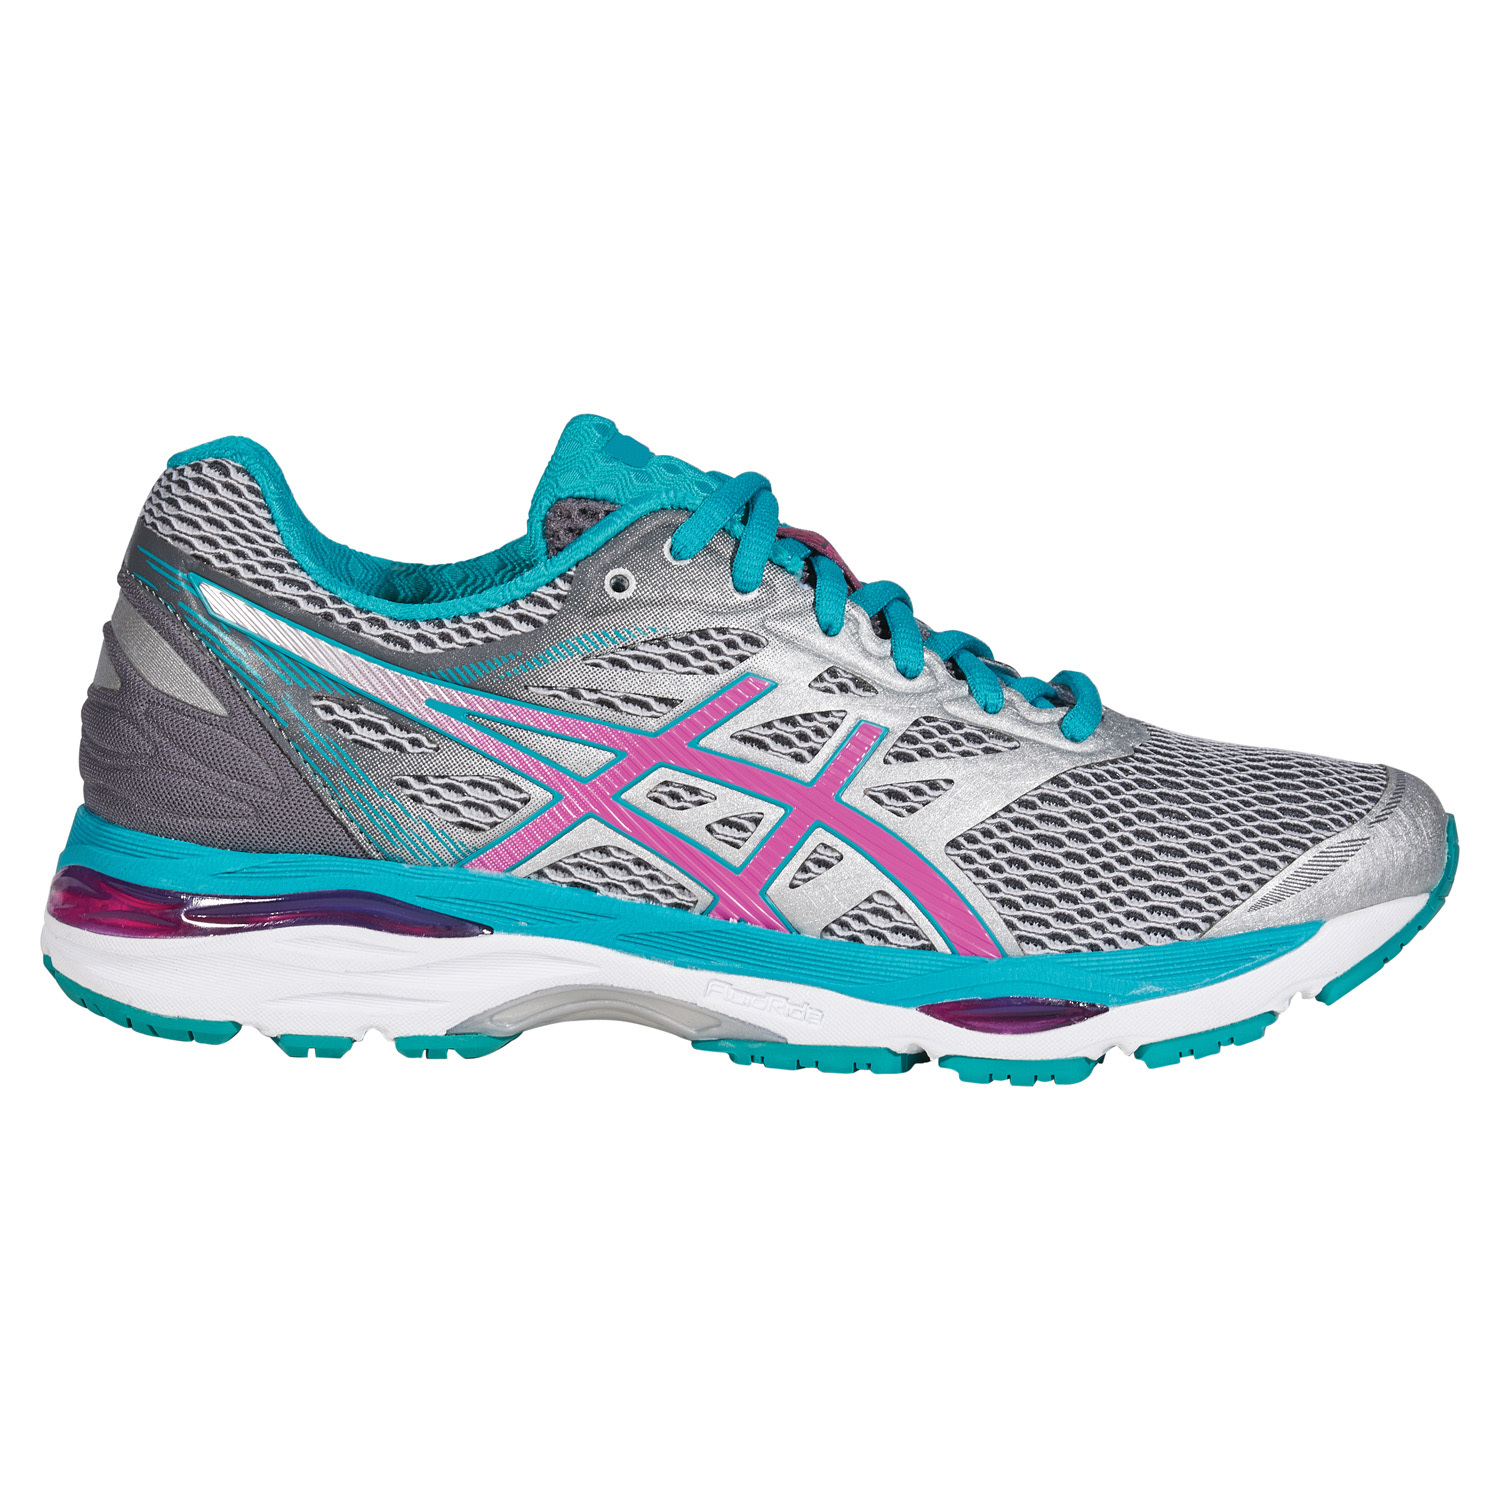 asics gel cumulus 18 footwear women running intersport canada. Black Bedroom Furniture Sets. Home Design Ideas